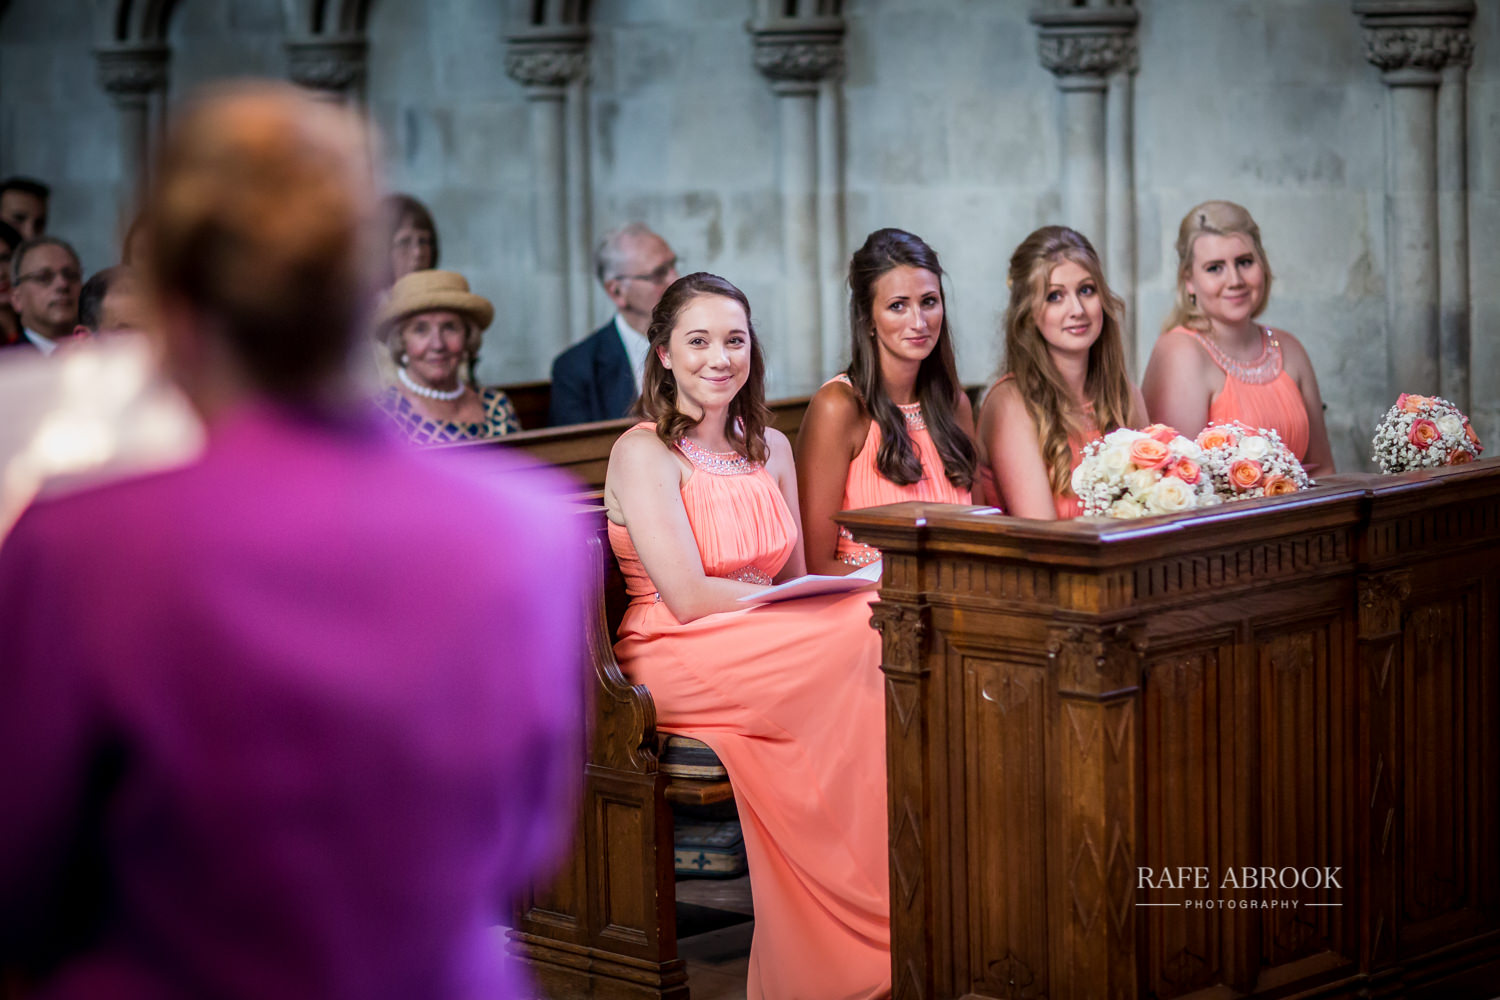 st albans cathedral wedding harpenden rafe abrook photography hertfordshire wedding photographer-1019.jpg